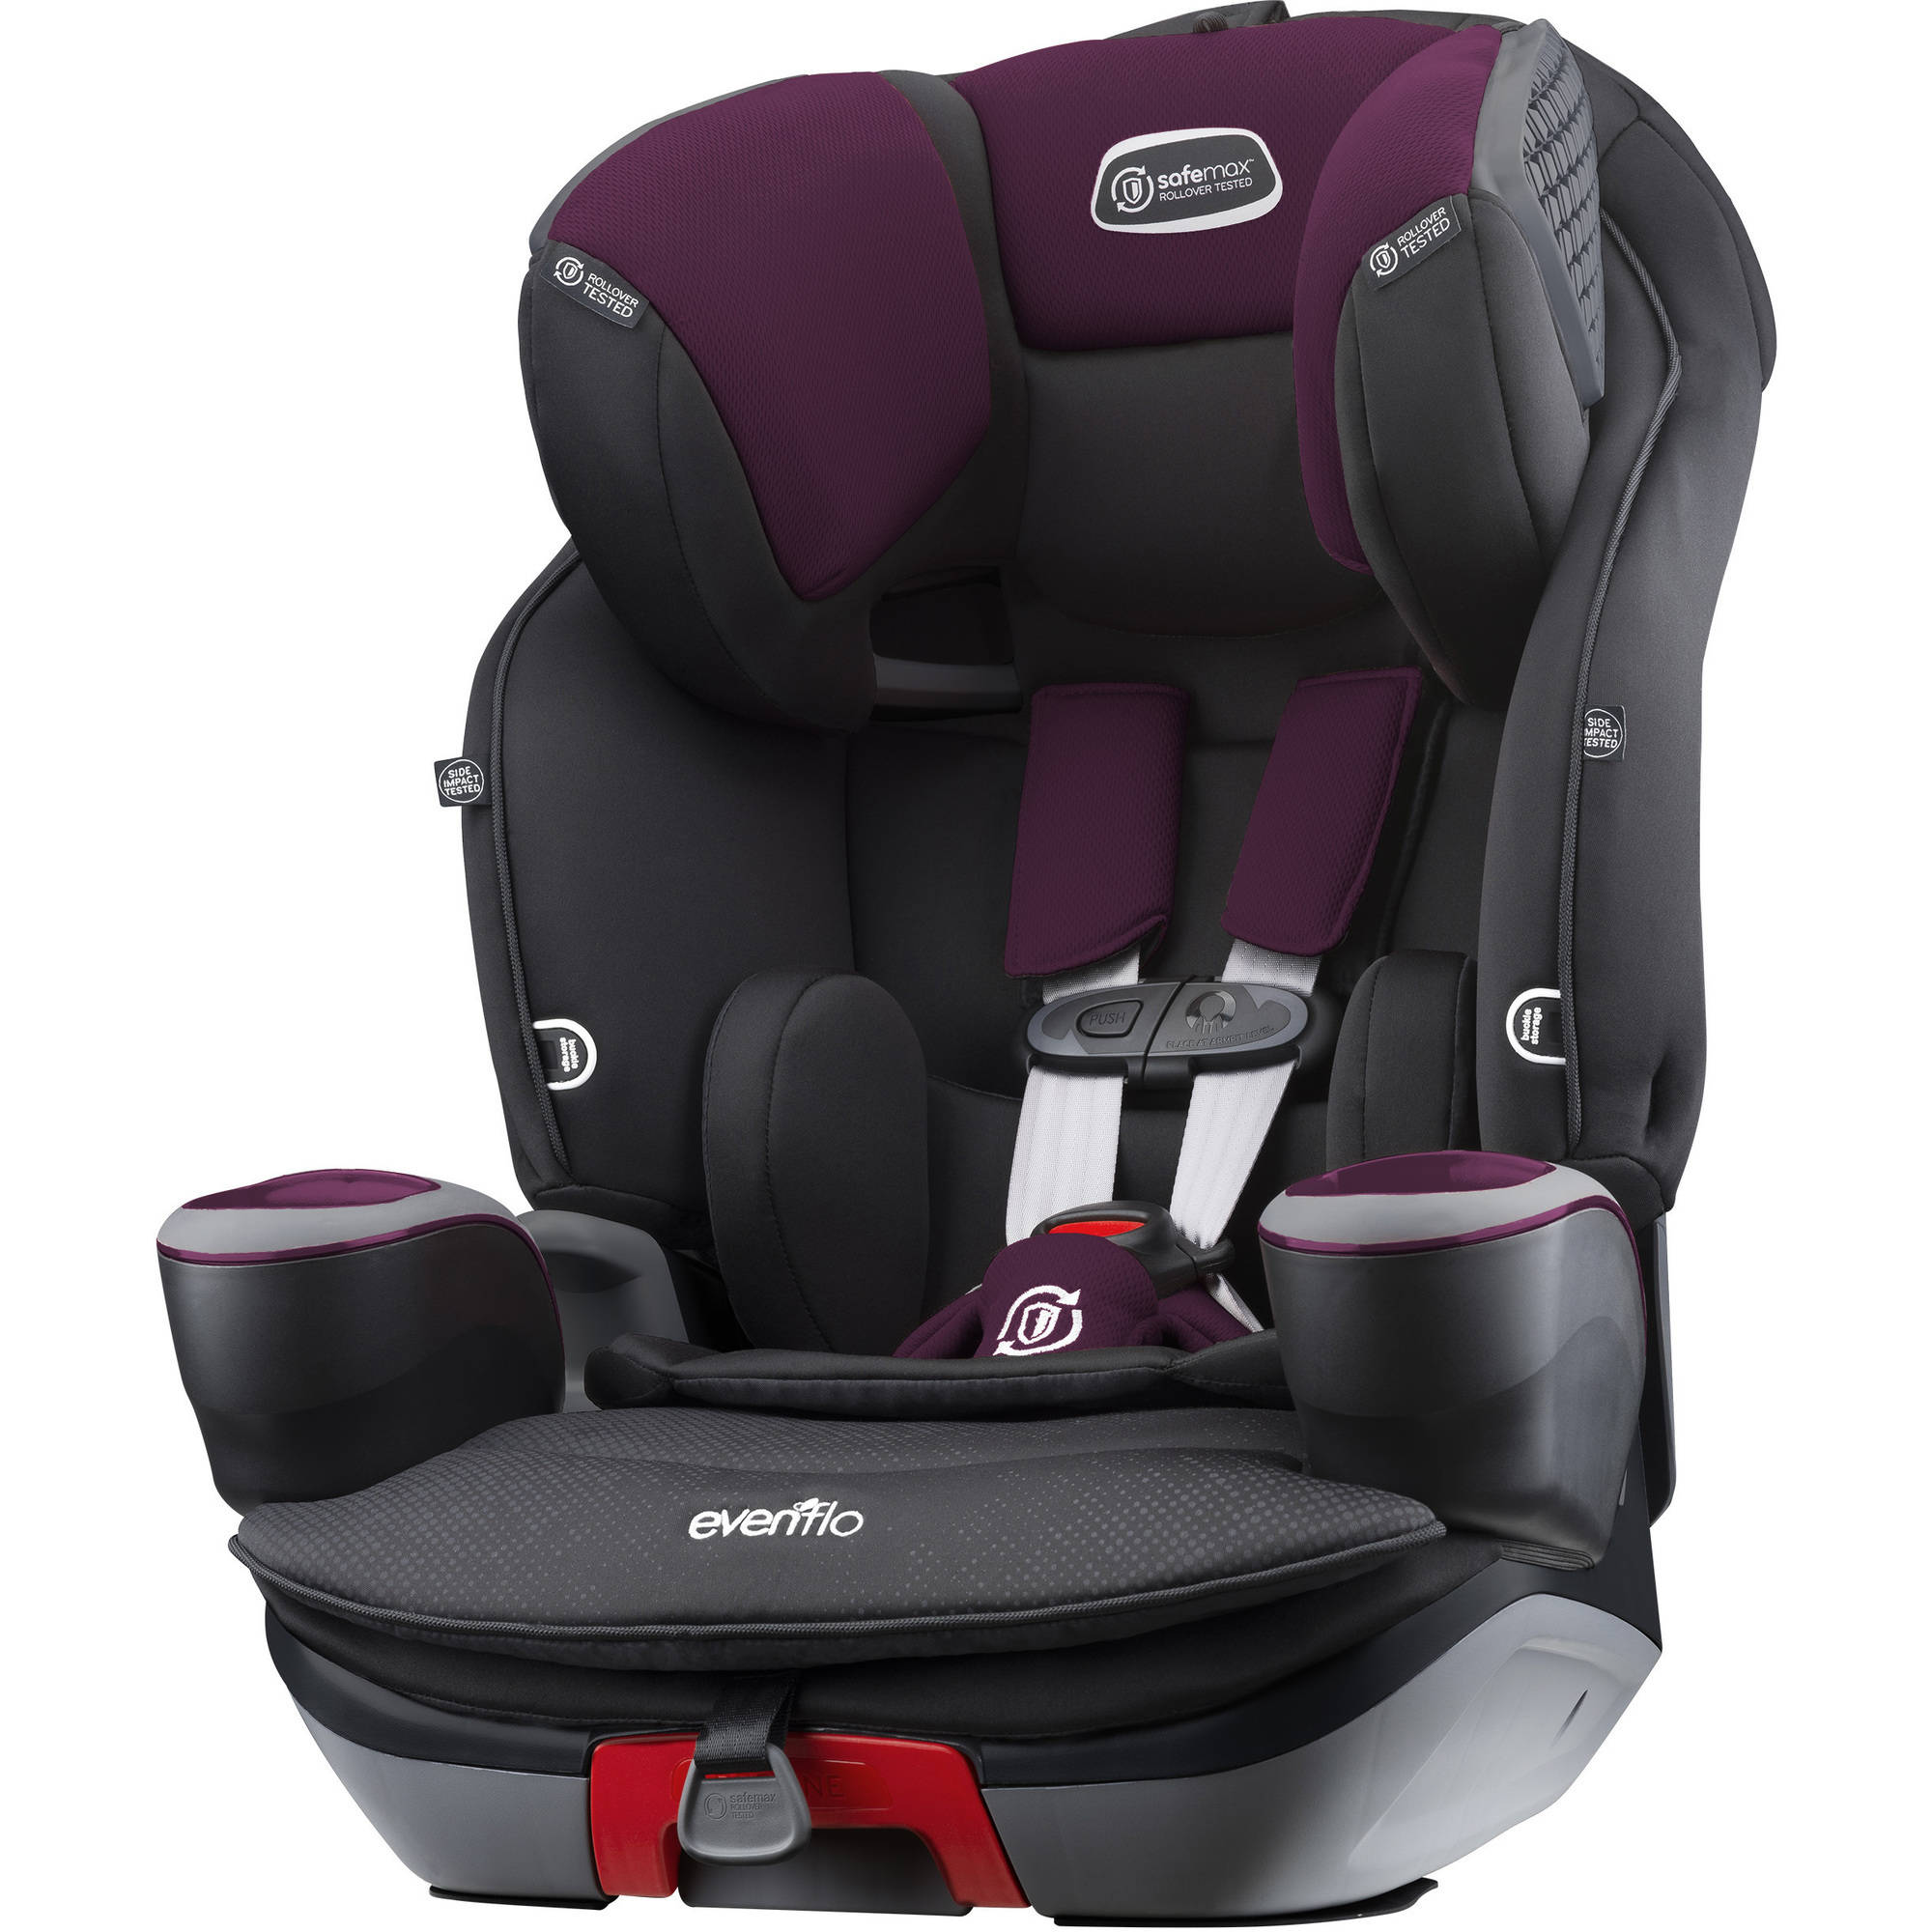 Evenflo SafeMax 3-in-1 Harness Booster Car Seat, Purple Berry